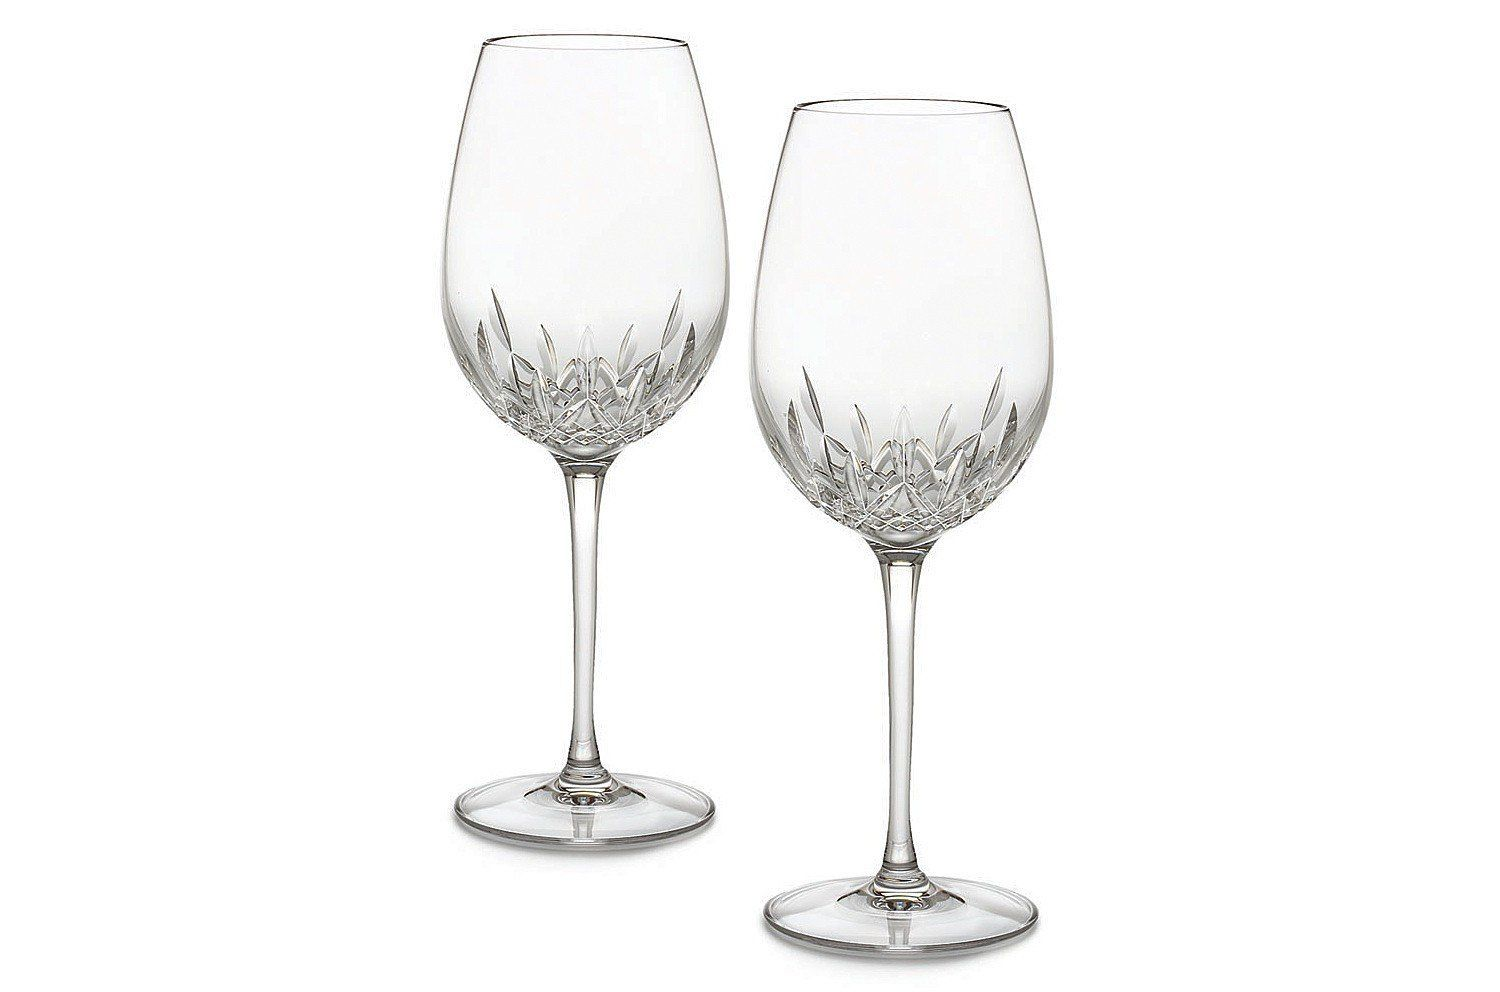 Crystal Wedding Anniversary Gift Ideas: Great 15th Wedding Anniversary Gift Ideas For Him